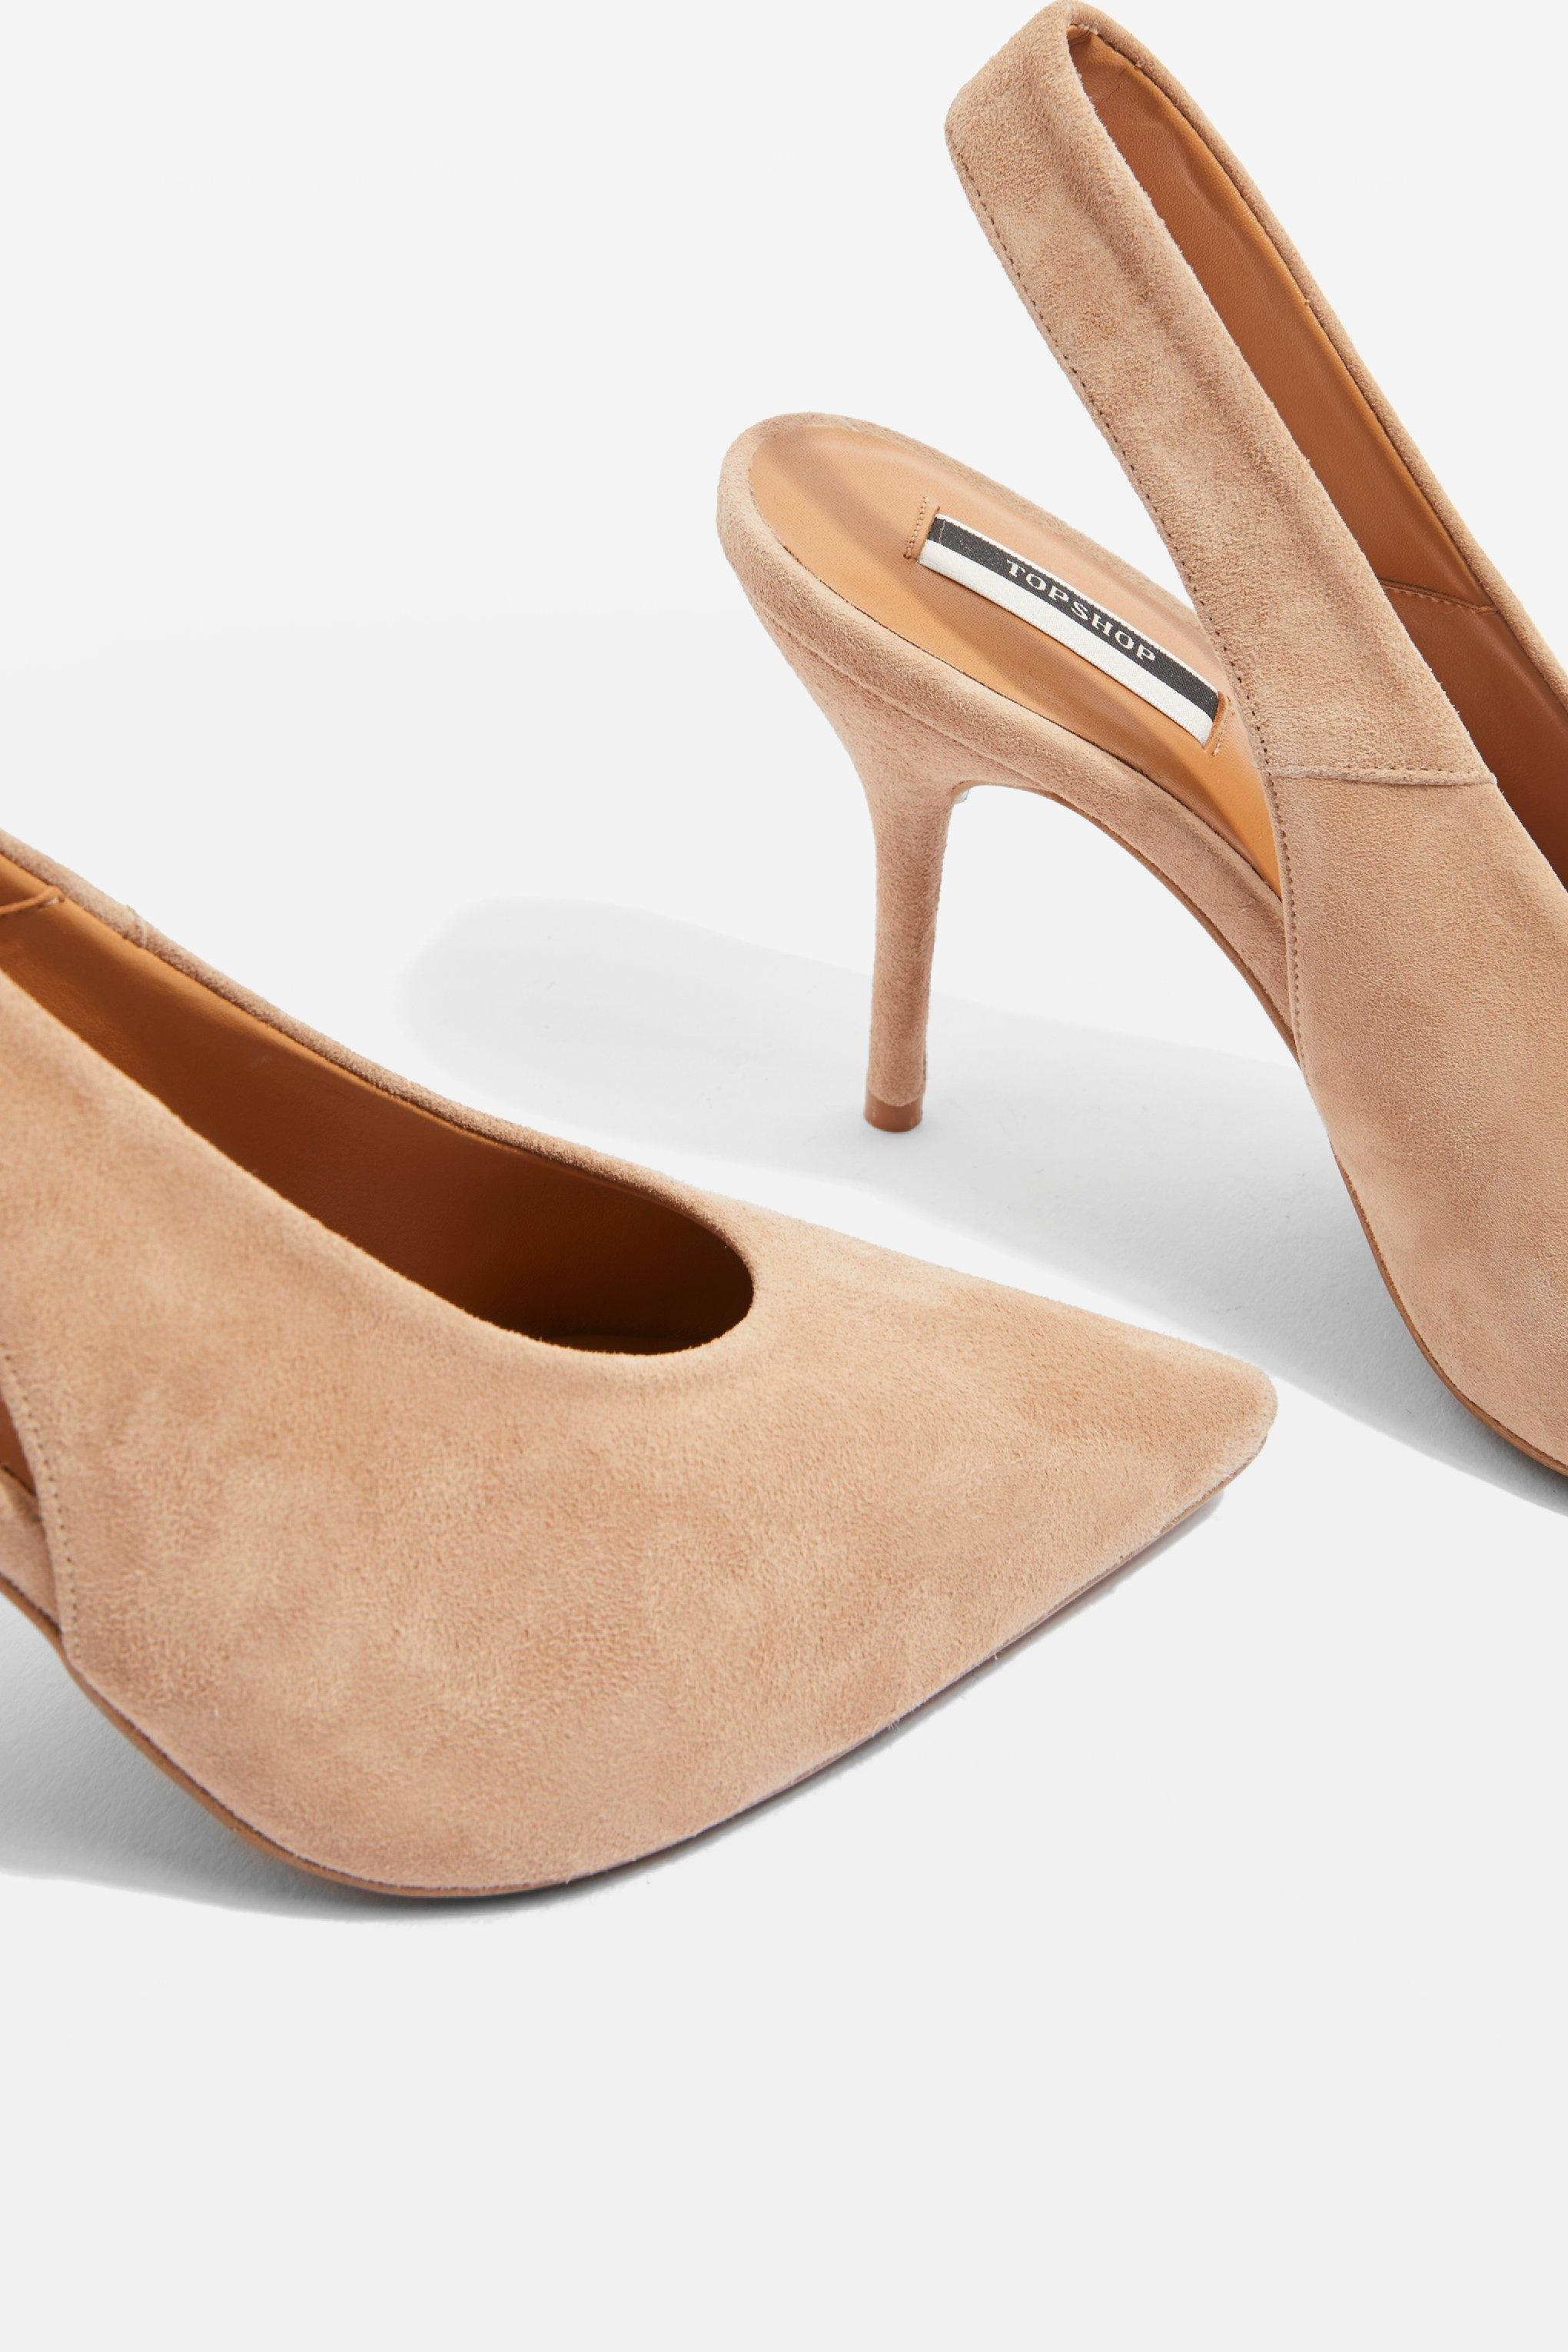 7b5f6186d88c TOPSHOP Gail Slingback Shoes in Natural - Lyst